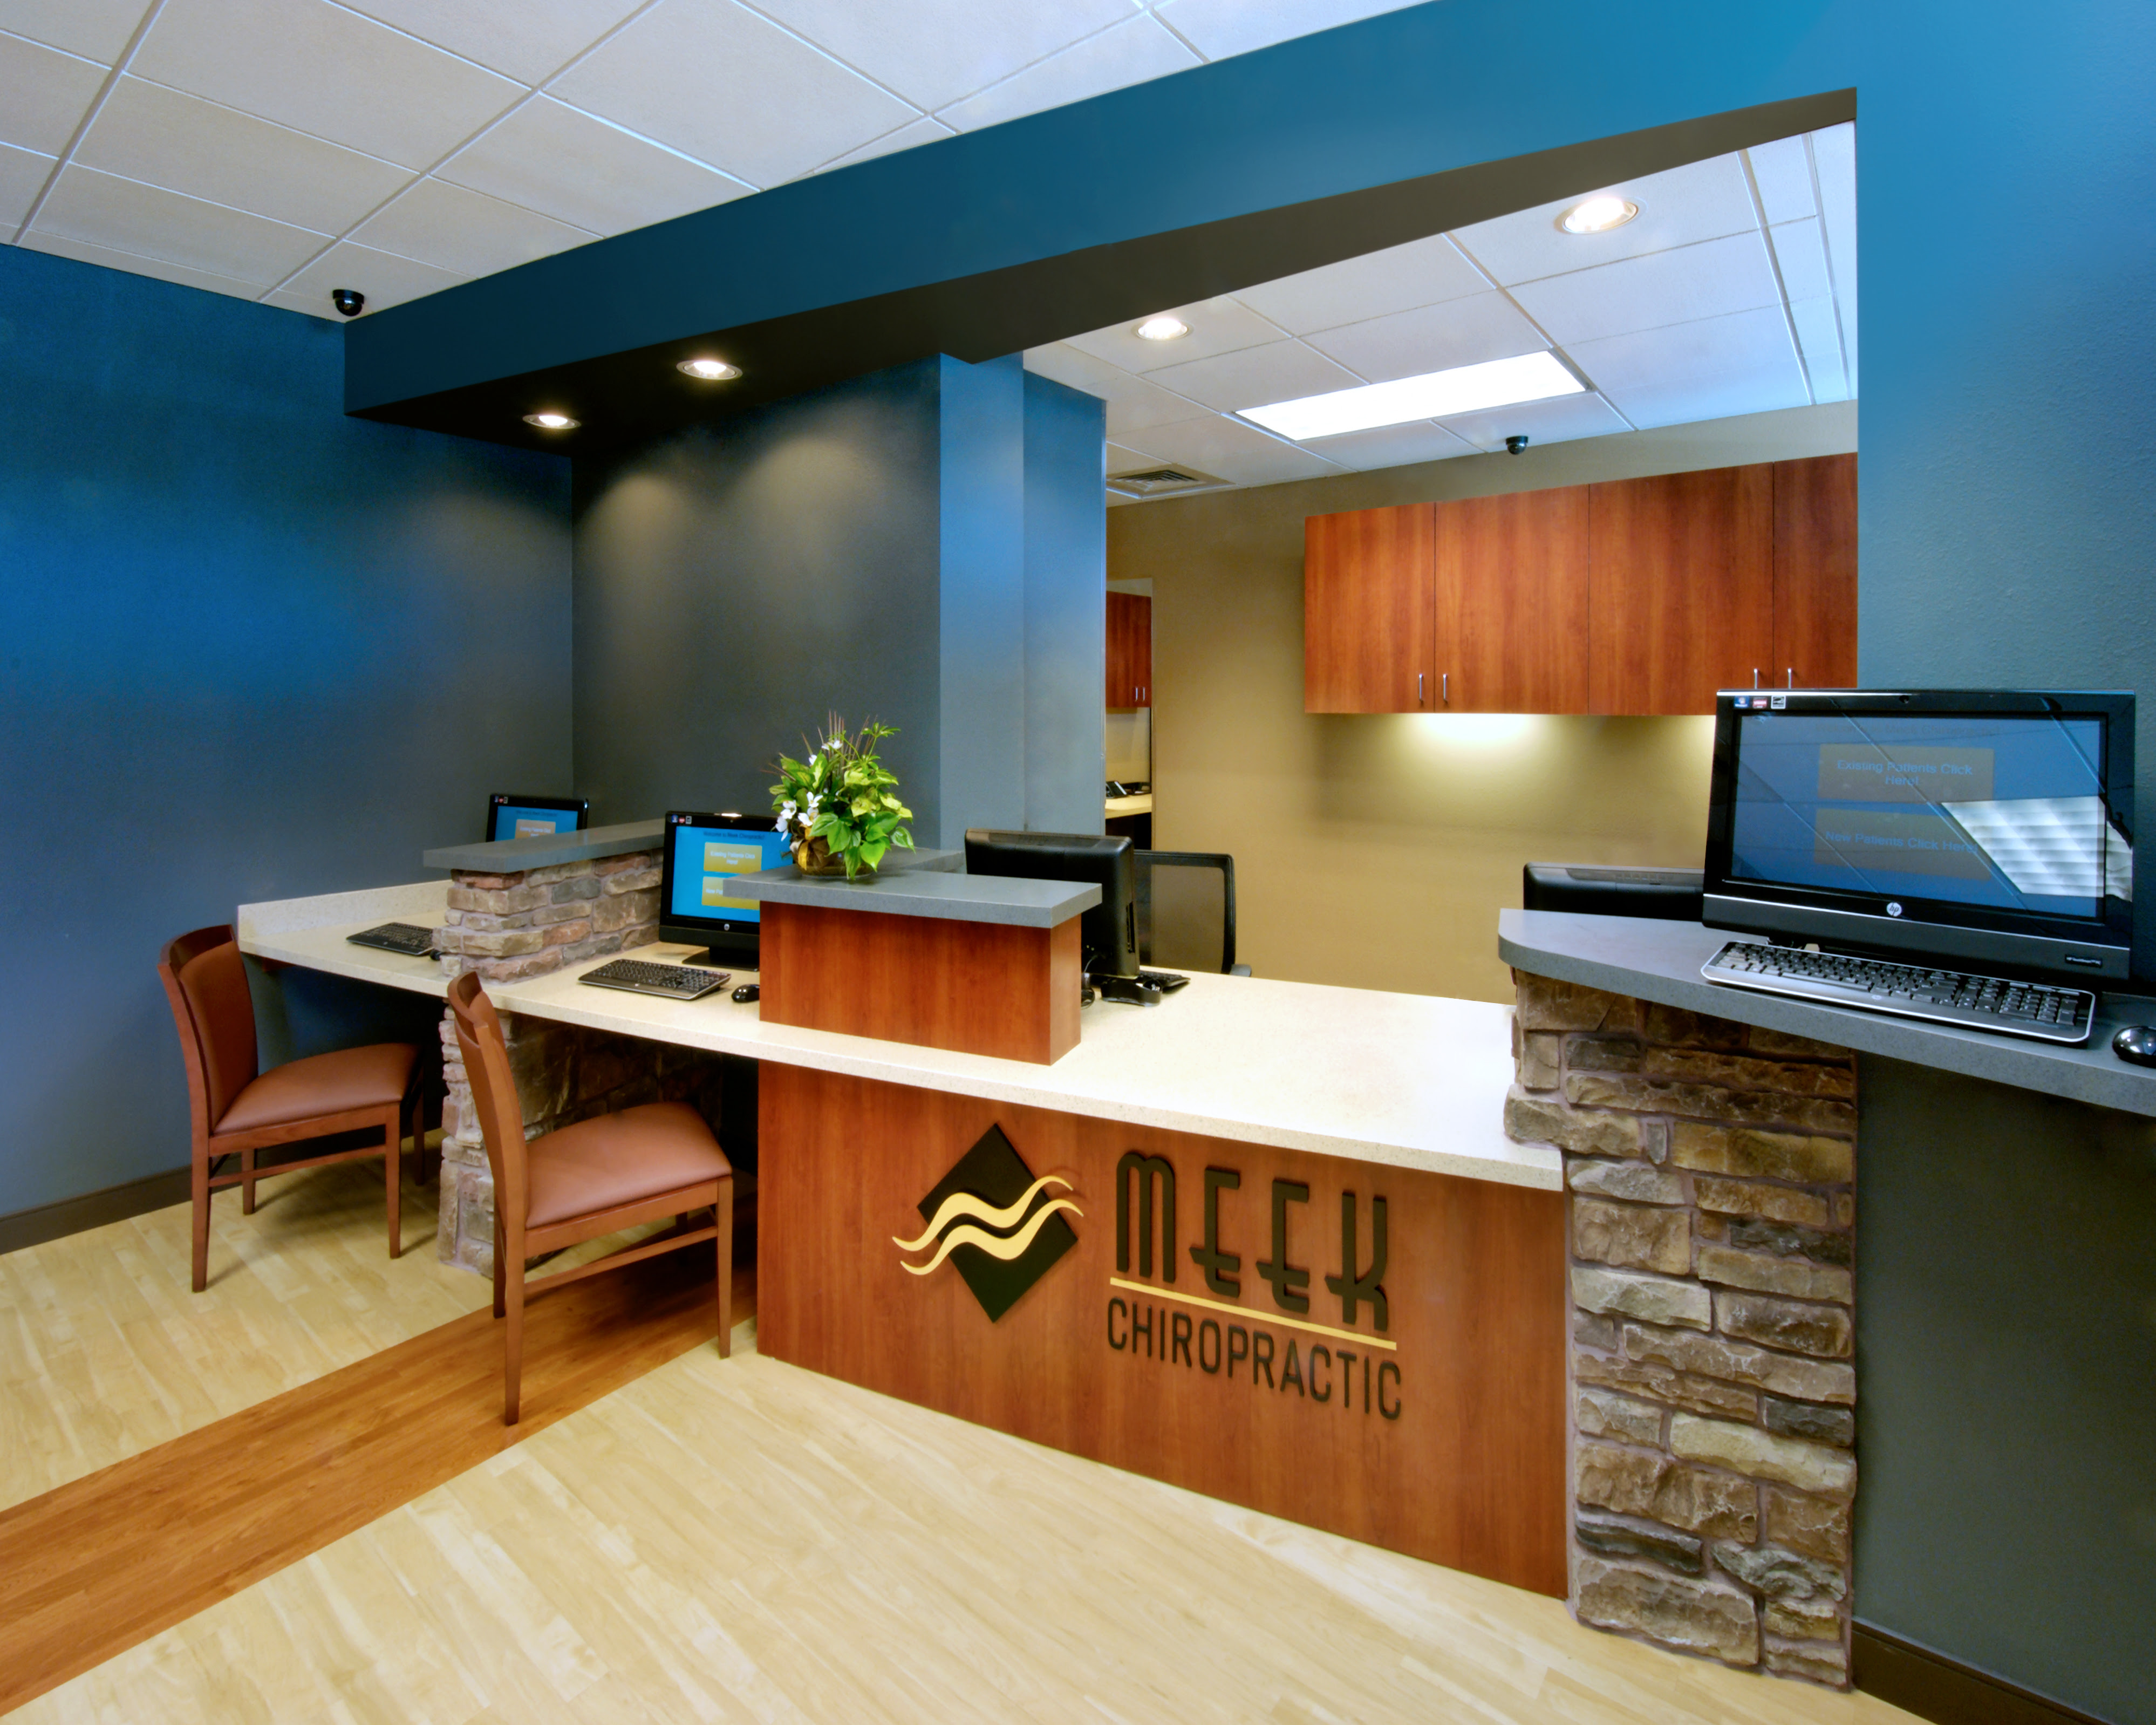 medical office design | H-Design's Blog